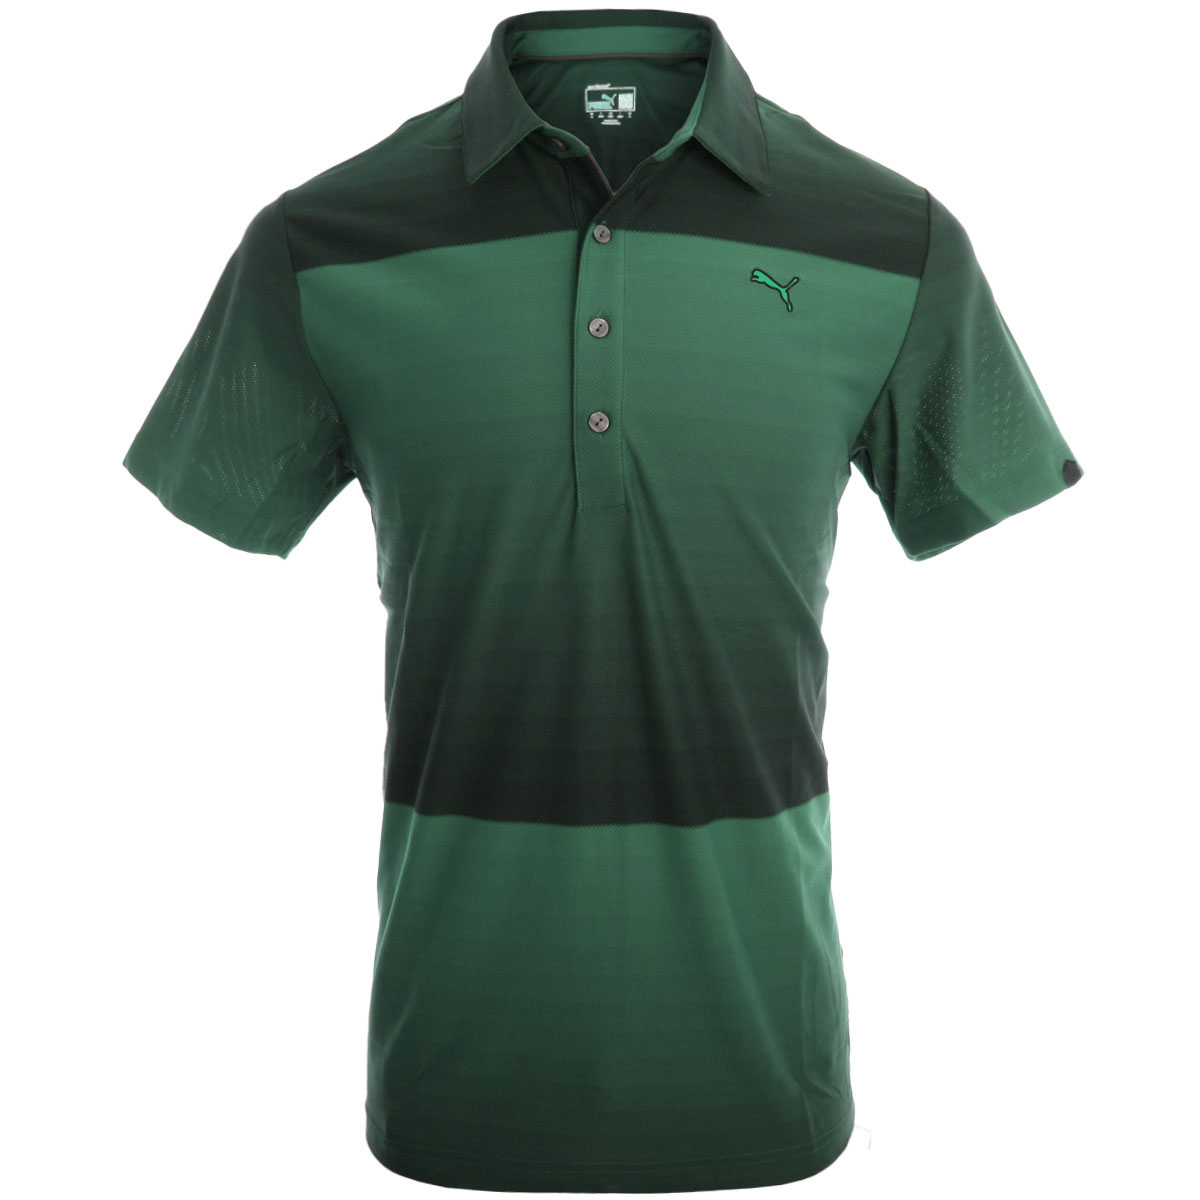 Puma golf 2014 mens ombre stripe polo shirt for Mens golf polo shirts